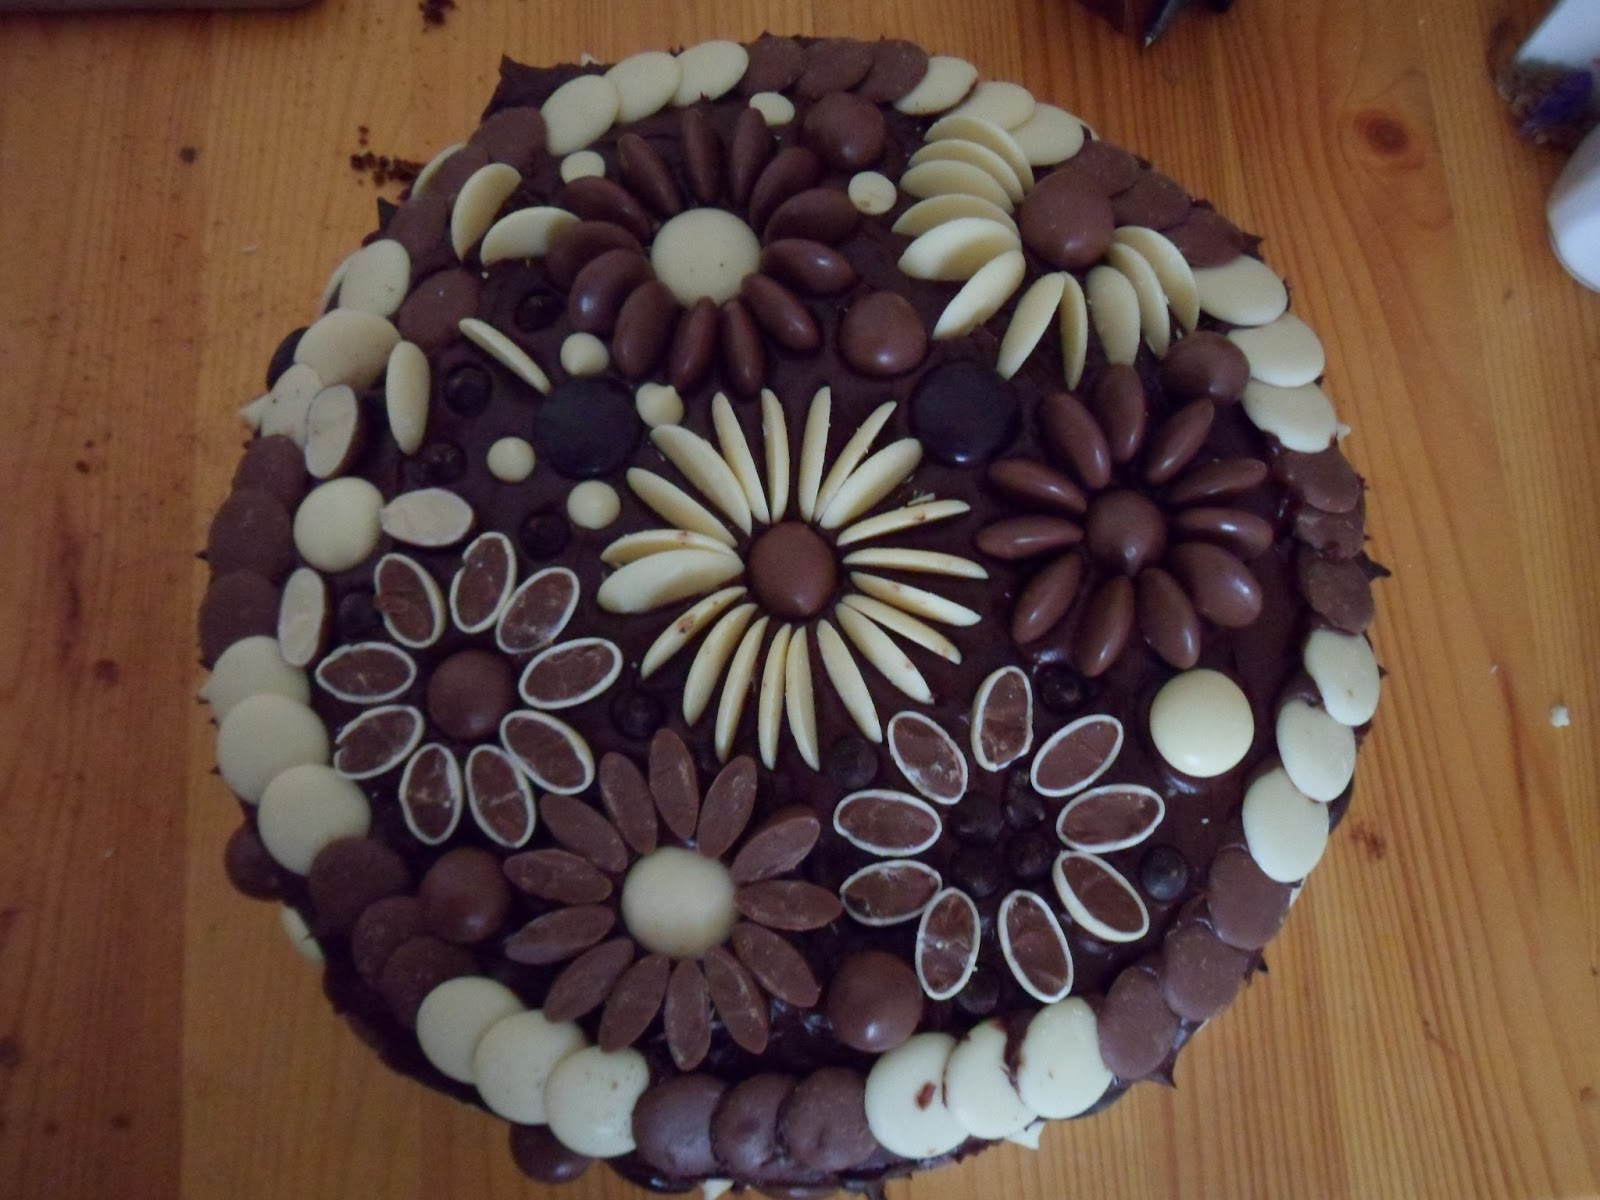 Cake Decorating Ideas With Modeling Chocolate : Cakes & Bakes: After Exams Victory Cake